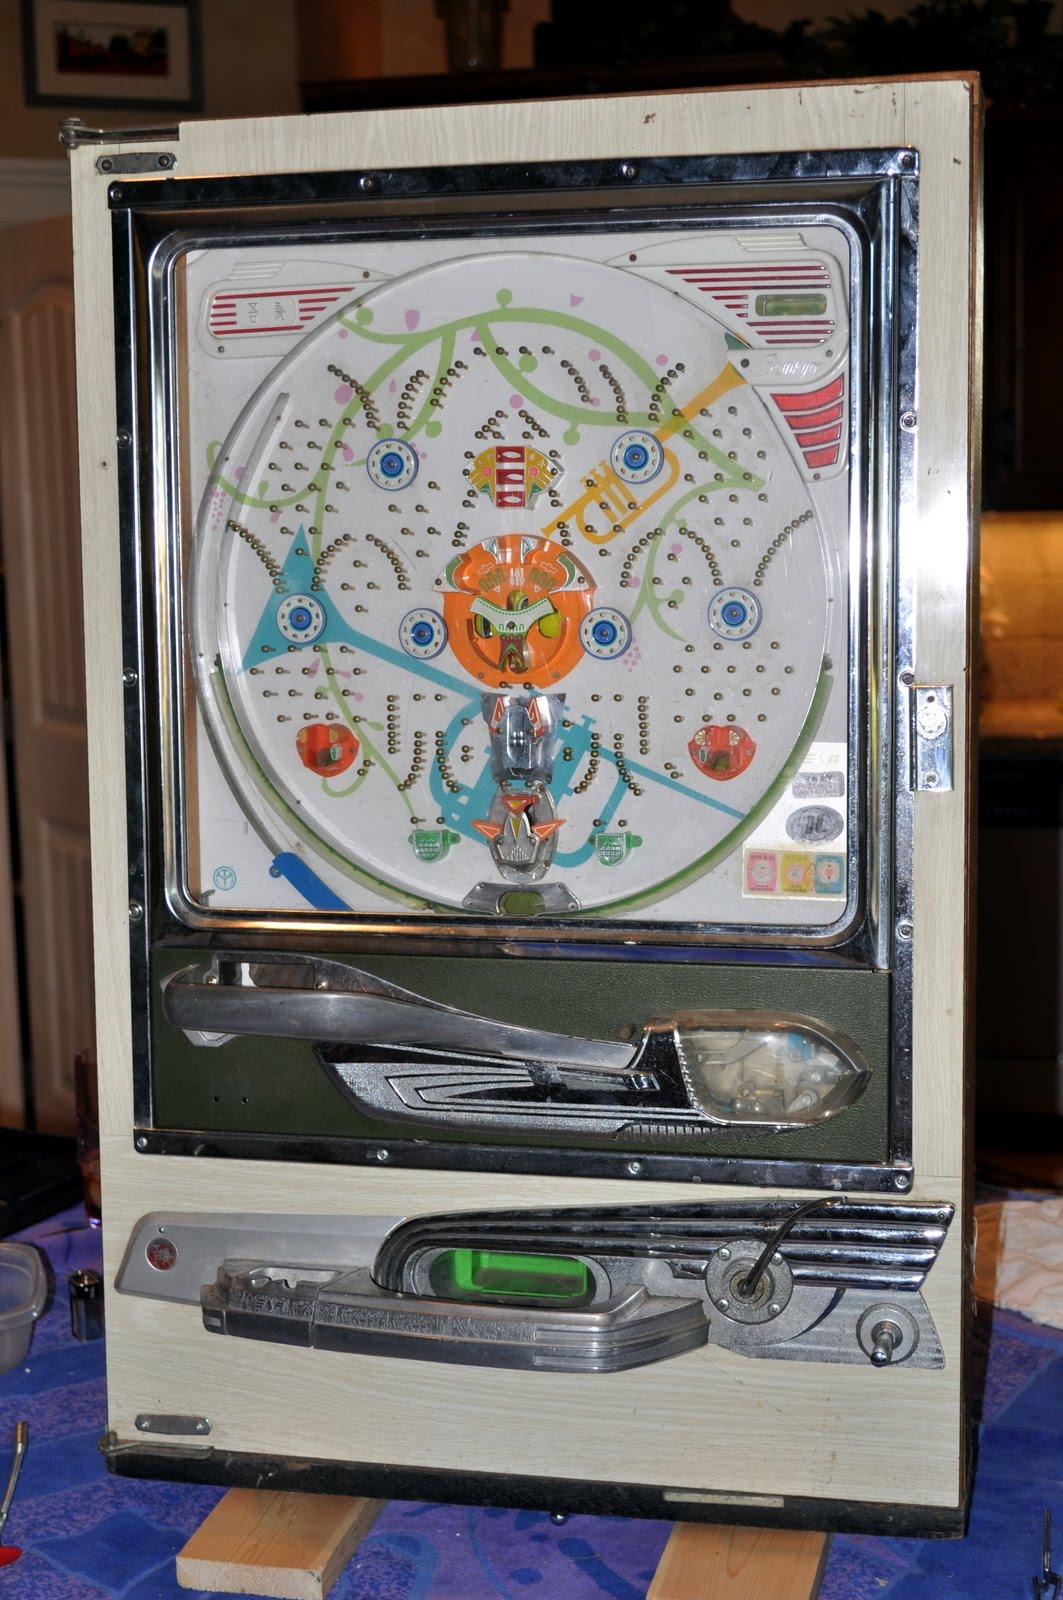 Craigslist In Boise >> What Am I Doing?: My Sankyo Pachinko Machine!